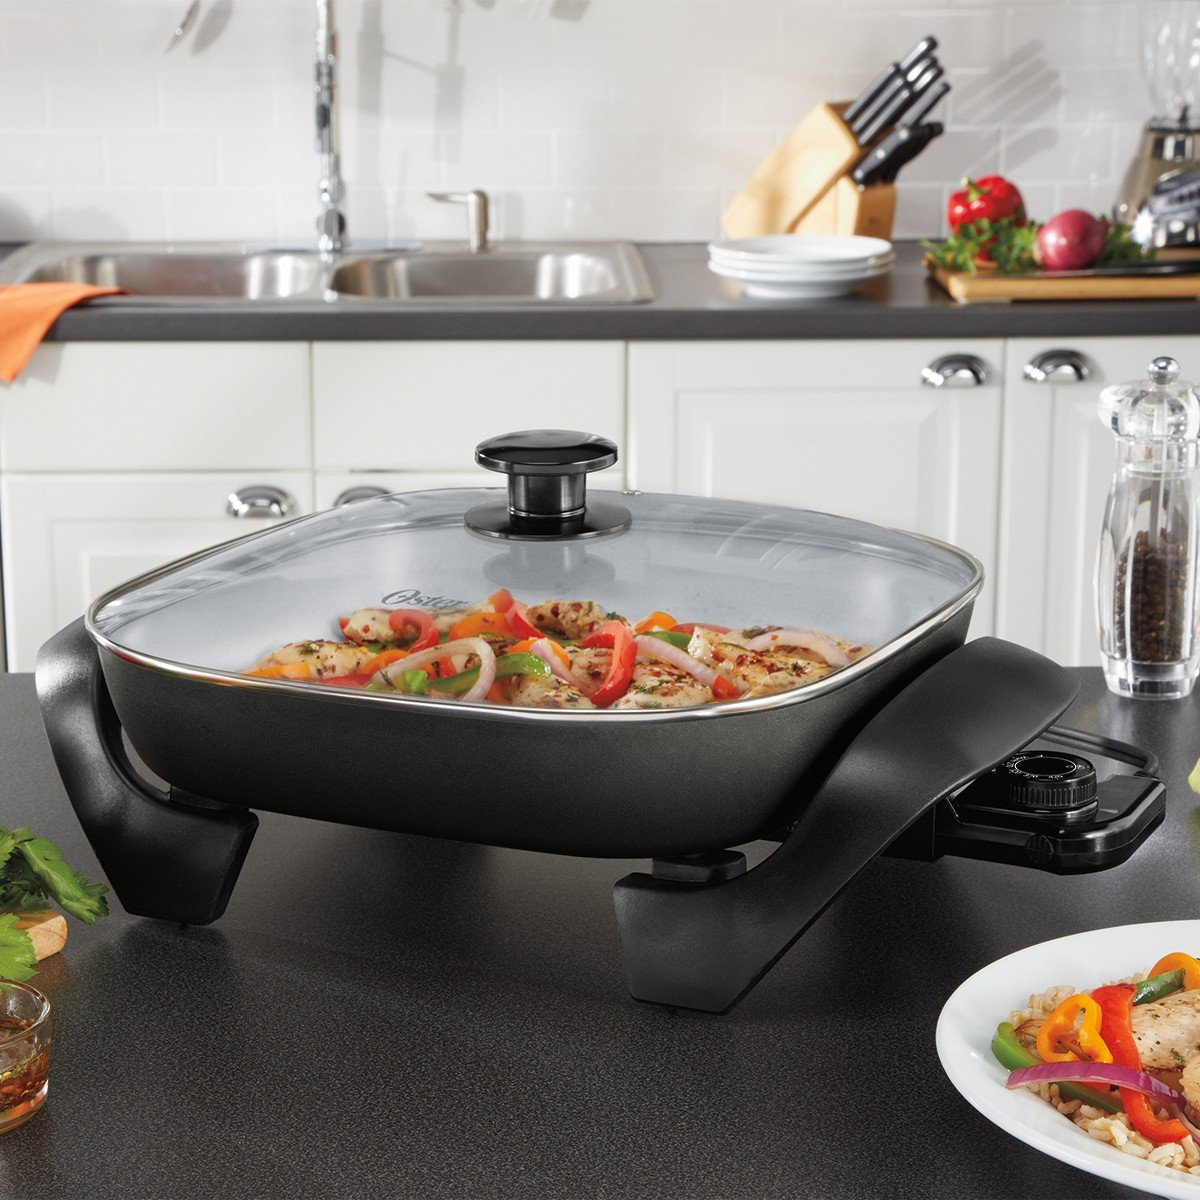 Oster Titanium Infused DuraCeramic Electric Skillet, 12 Inch, Square, Black/Silver (CKSTSKFM12-TECO) by Oster (Image #7)